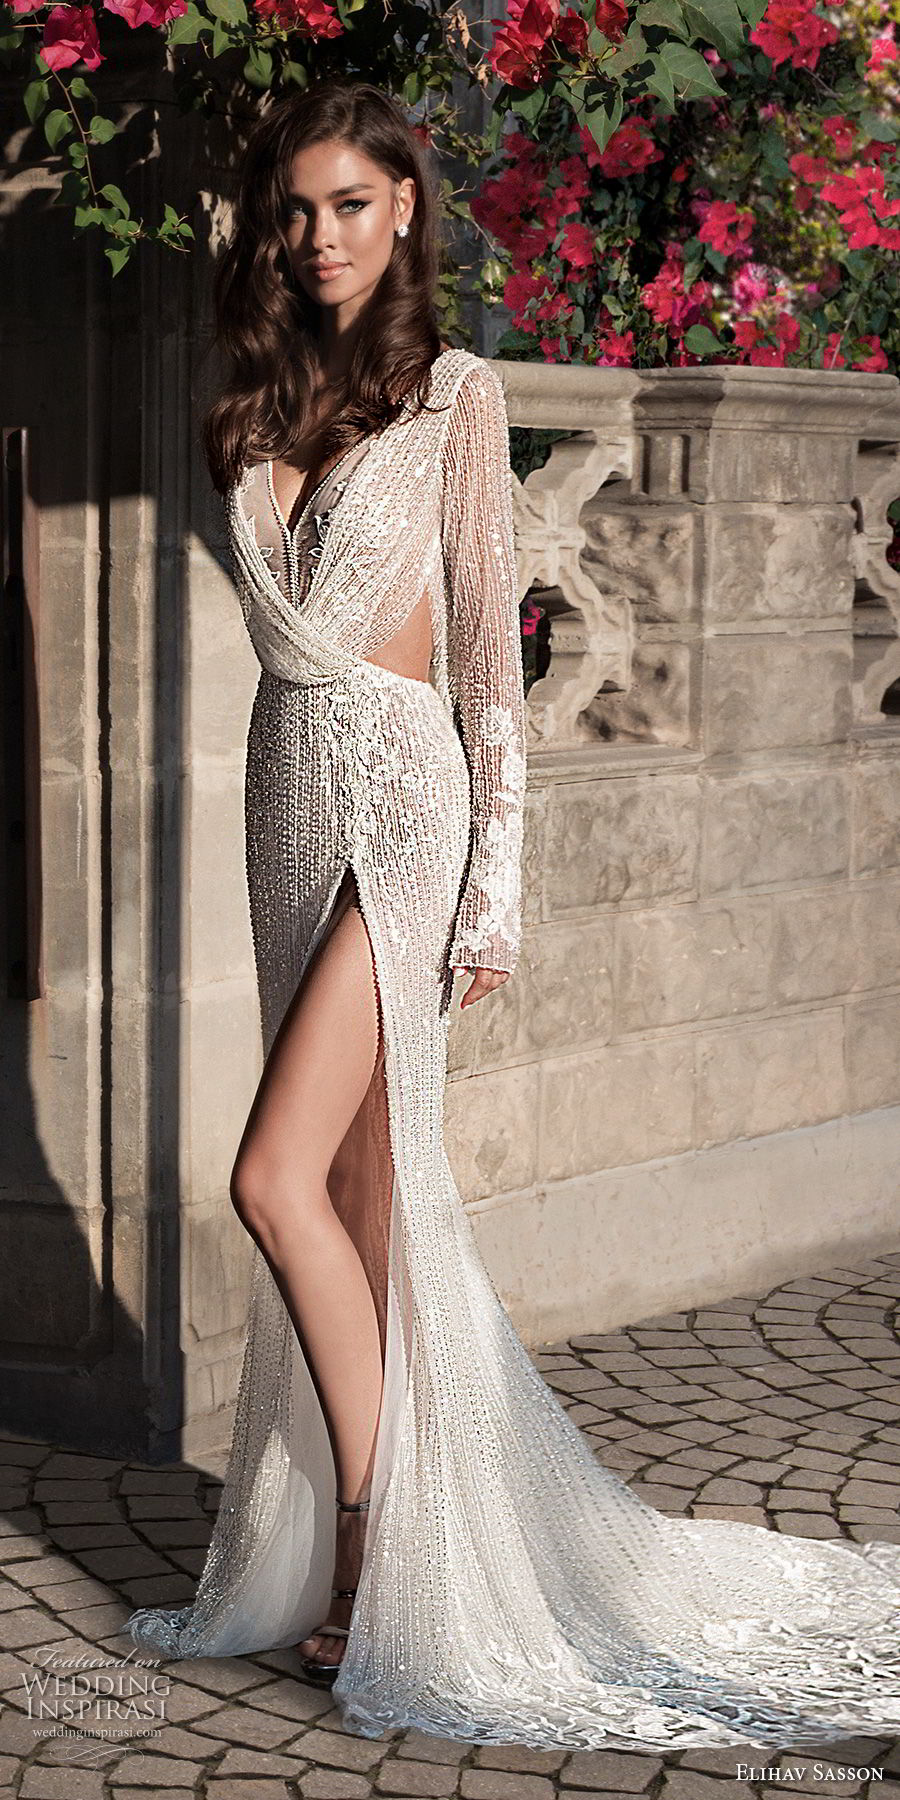 elihav sasson 2018 capsule bridal long sleeves v neck full embellishment high slit skirt sheath wedding dress open back chapel train (11) mv